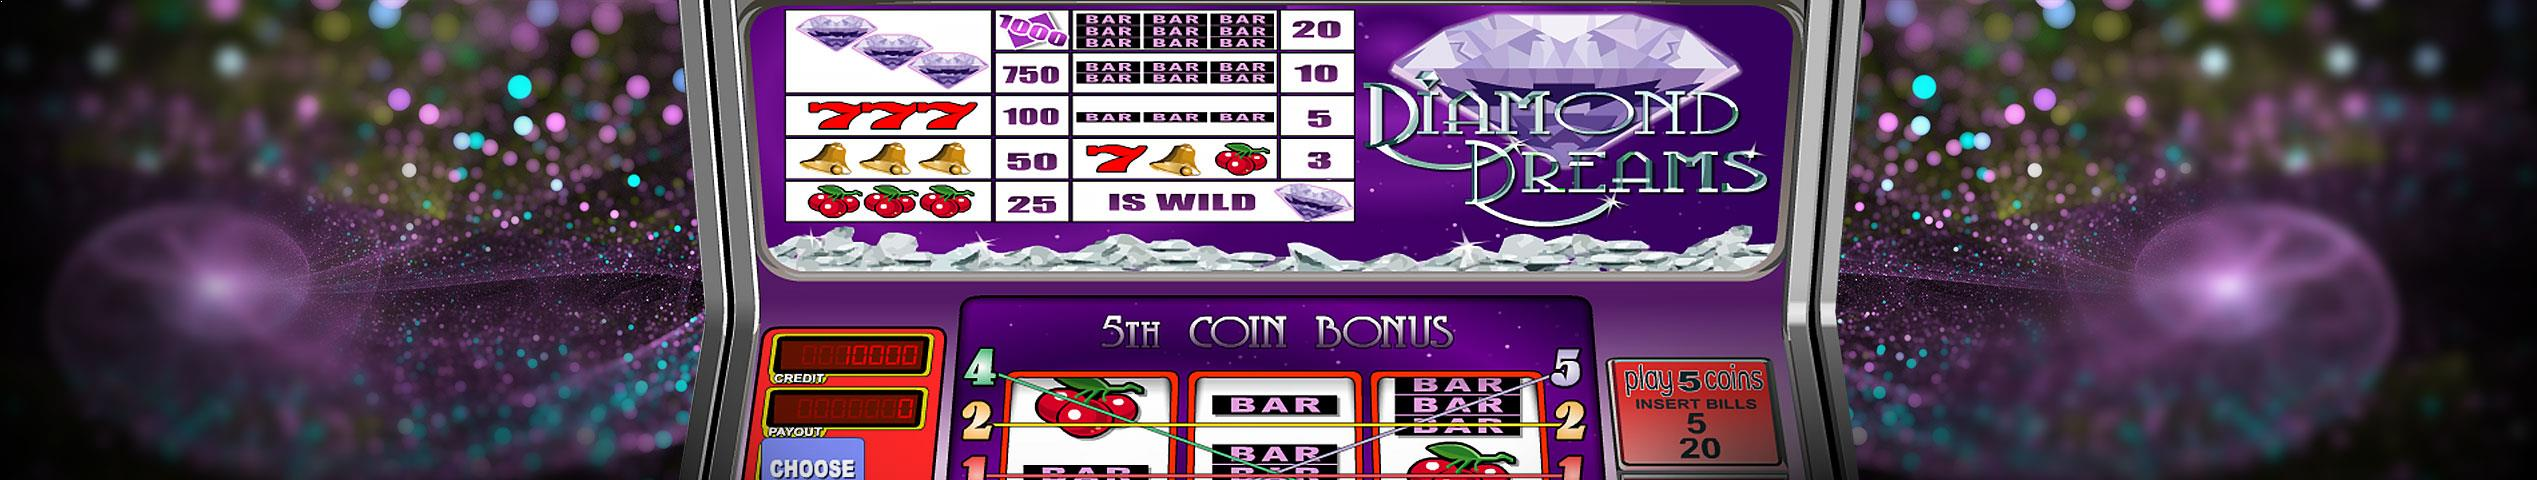 Diamond Dreams Multa Baft jocuri slot slider Betsoft